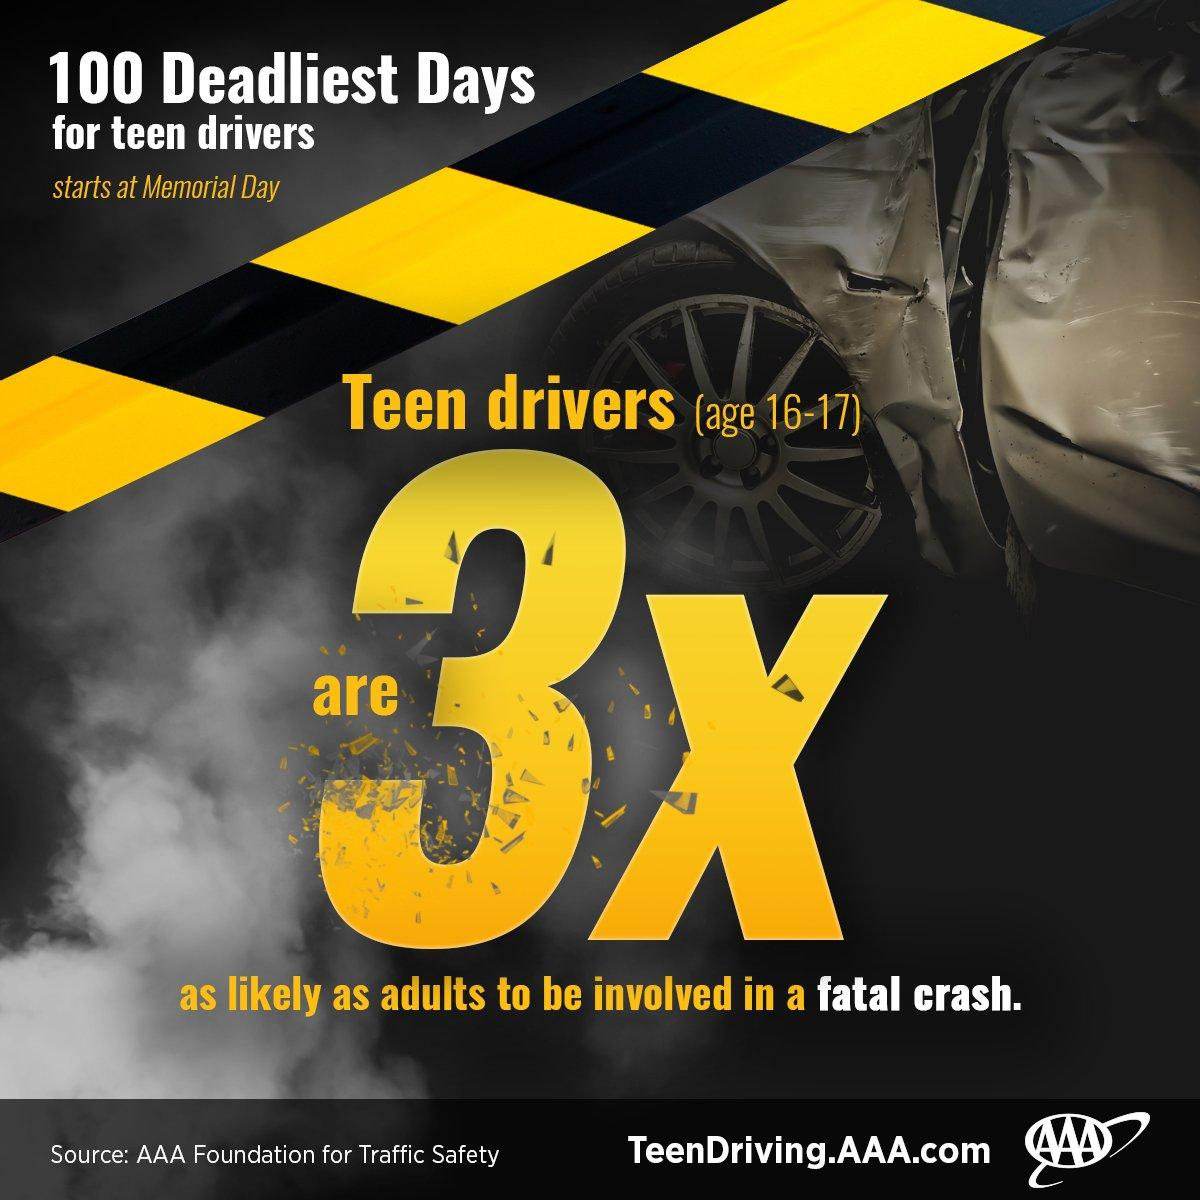 Teen Drivers Far More Likely to Be Involved in Fatal Crash